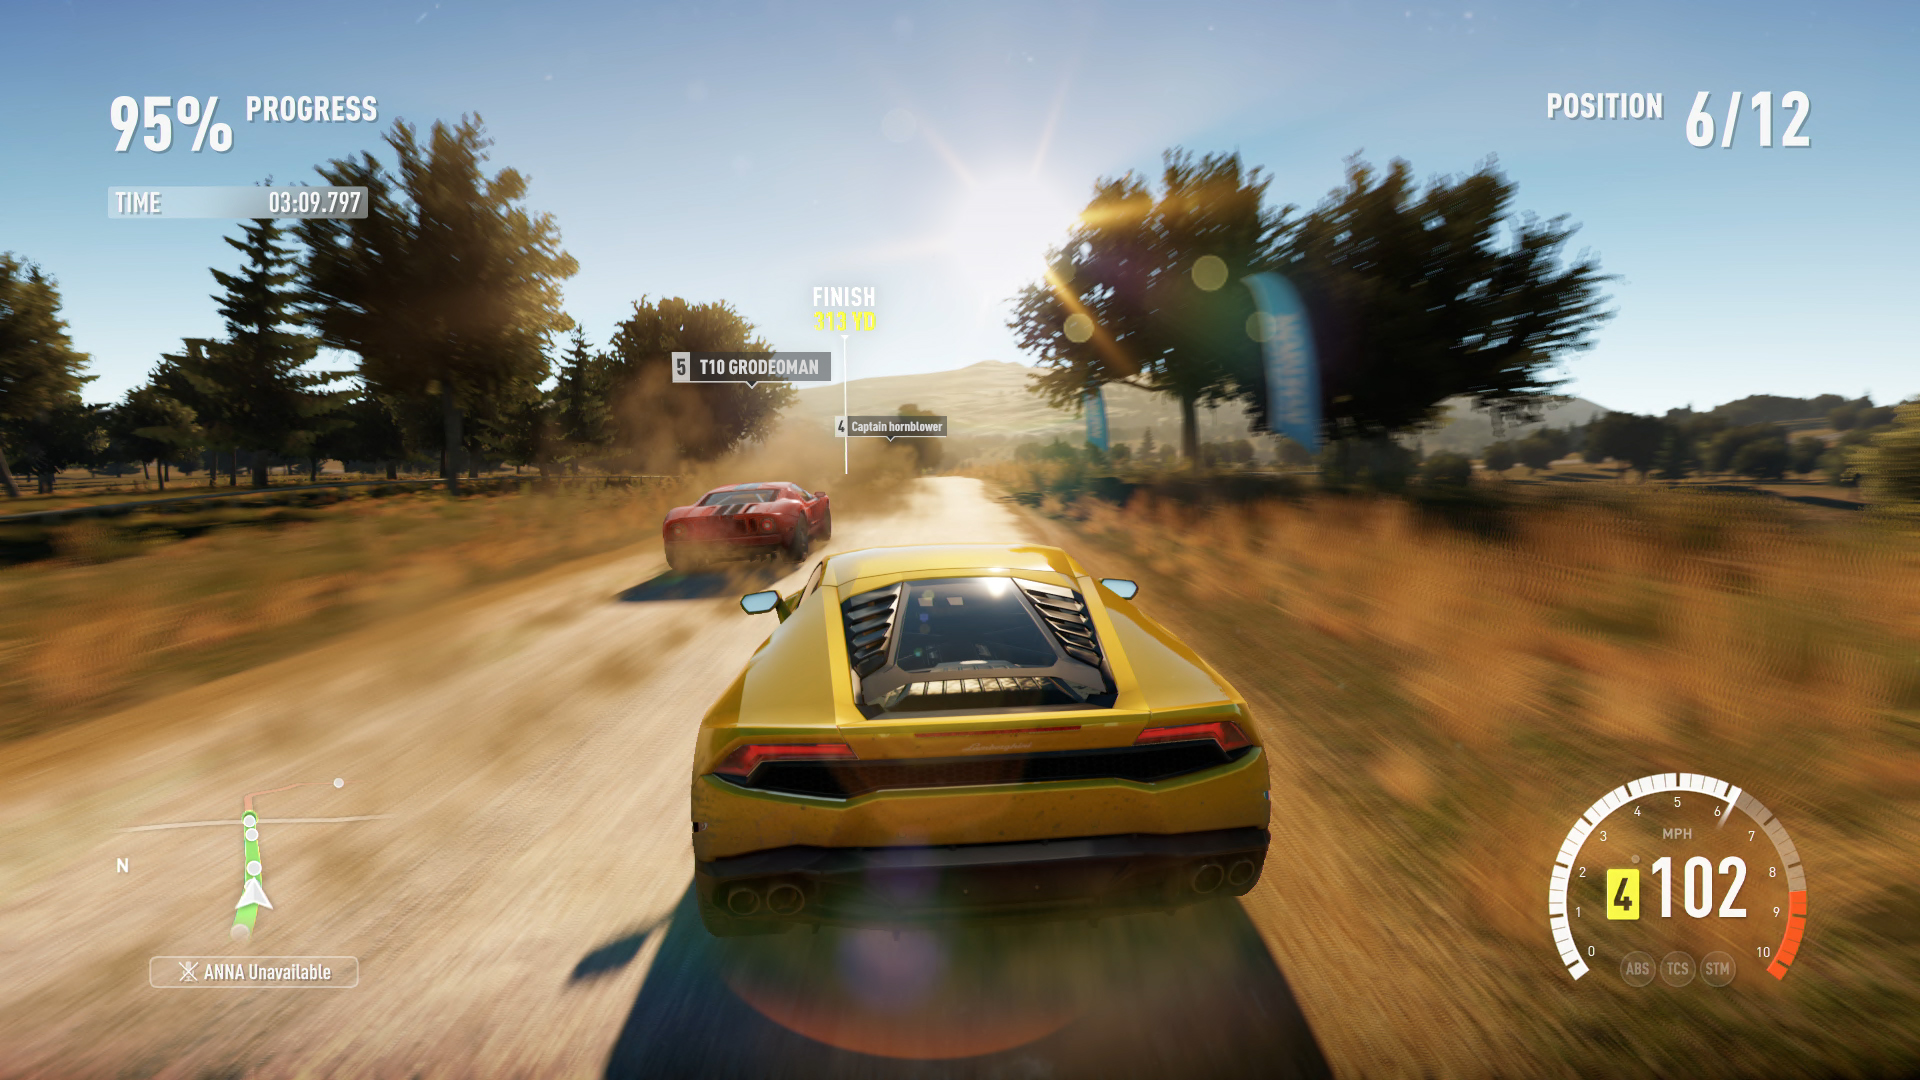 Forza 2 game save slots online for money